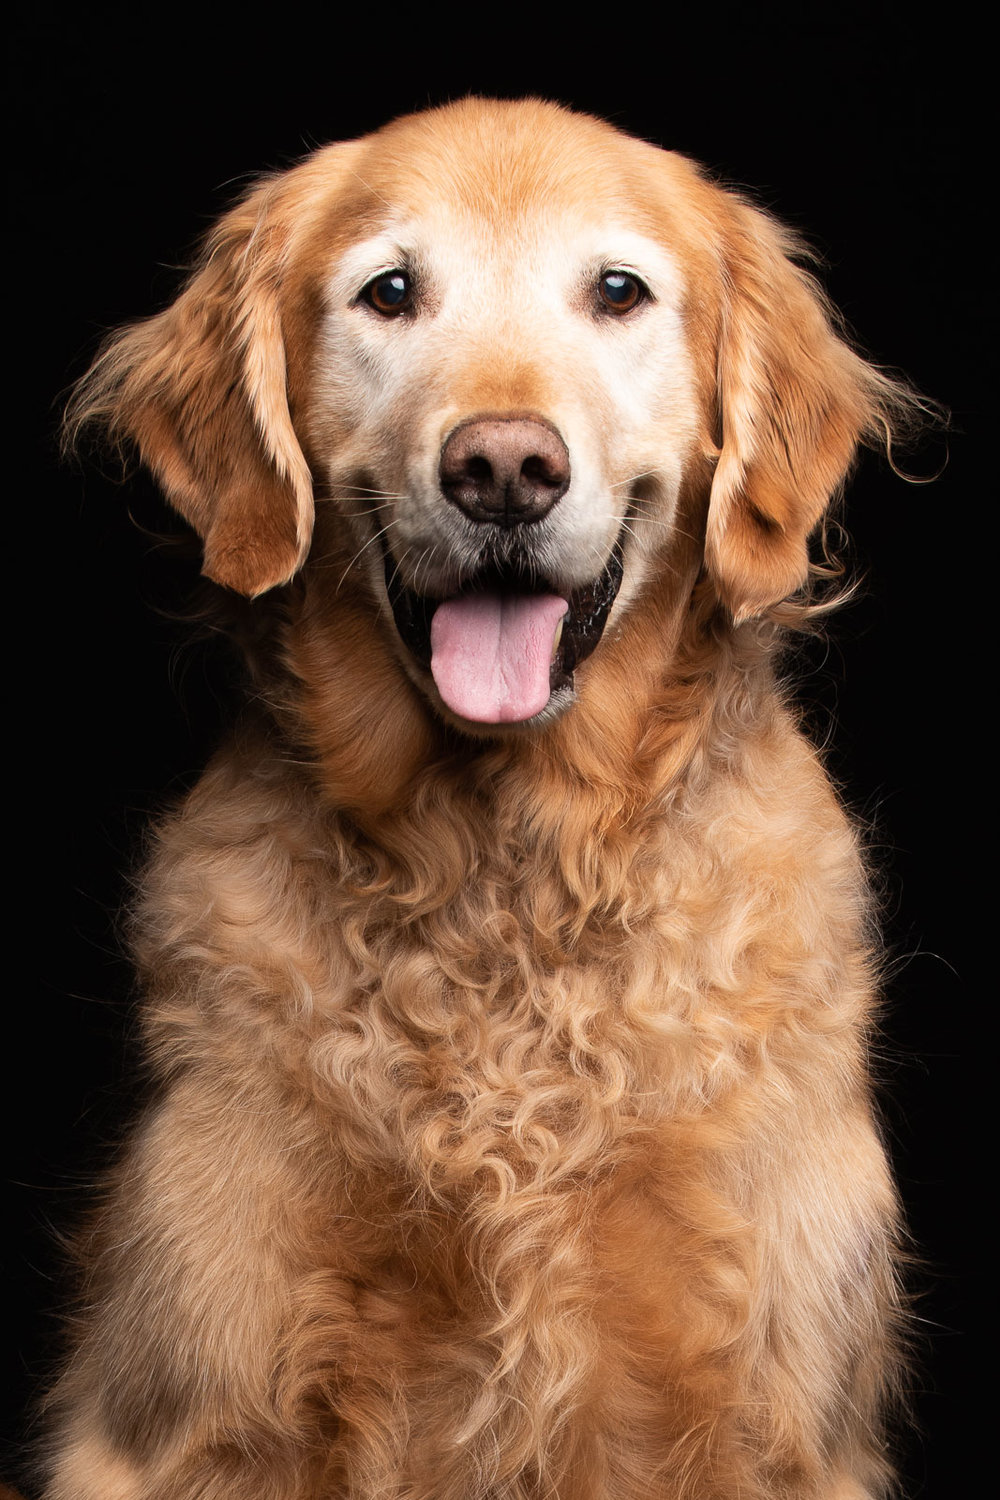 Canine_Therapy_portriats-196_Web.jpg